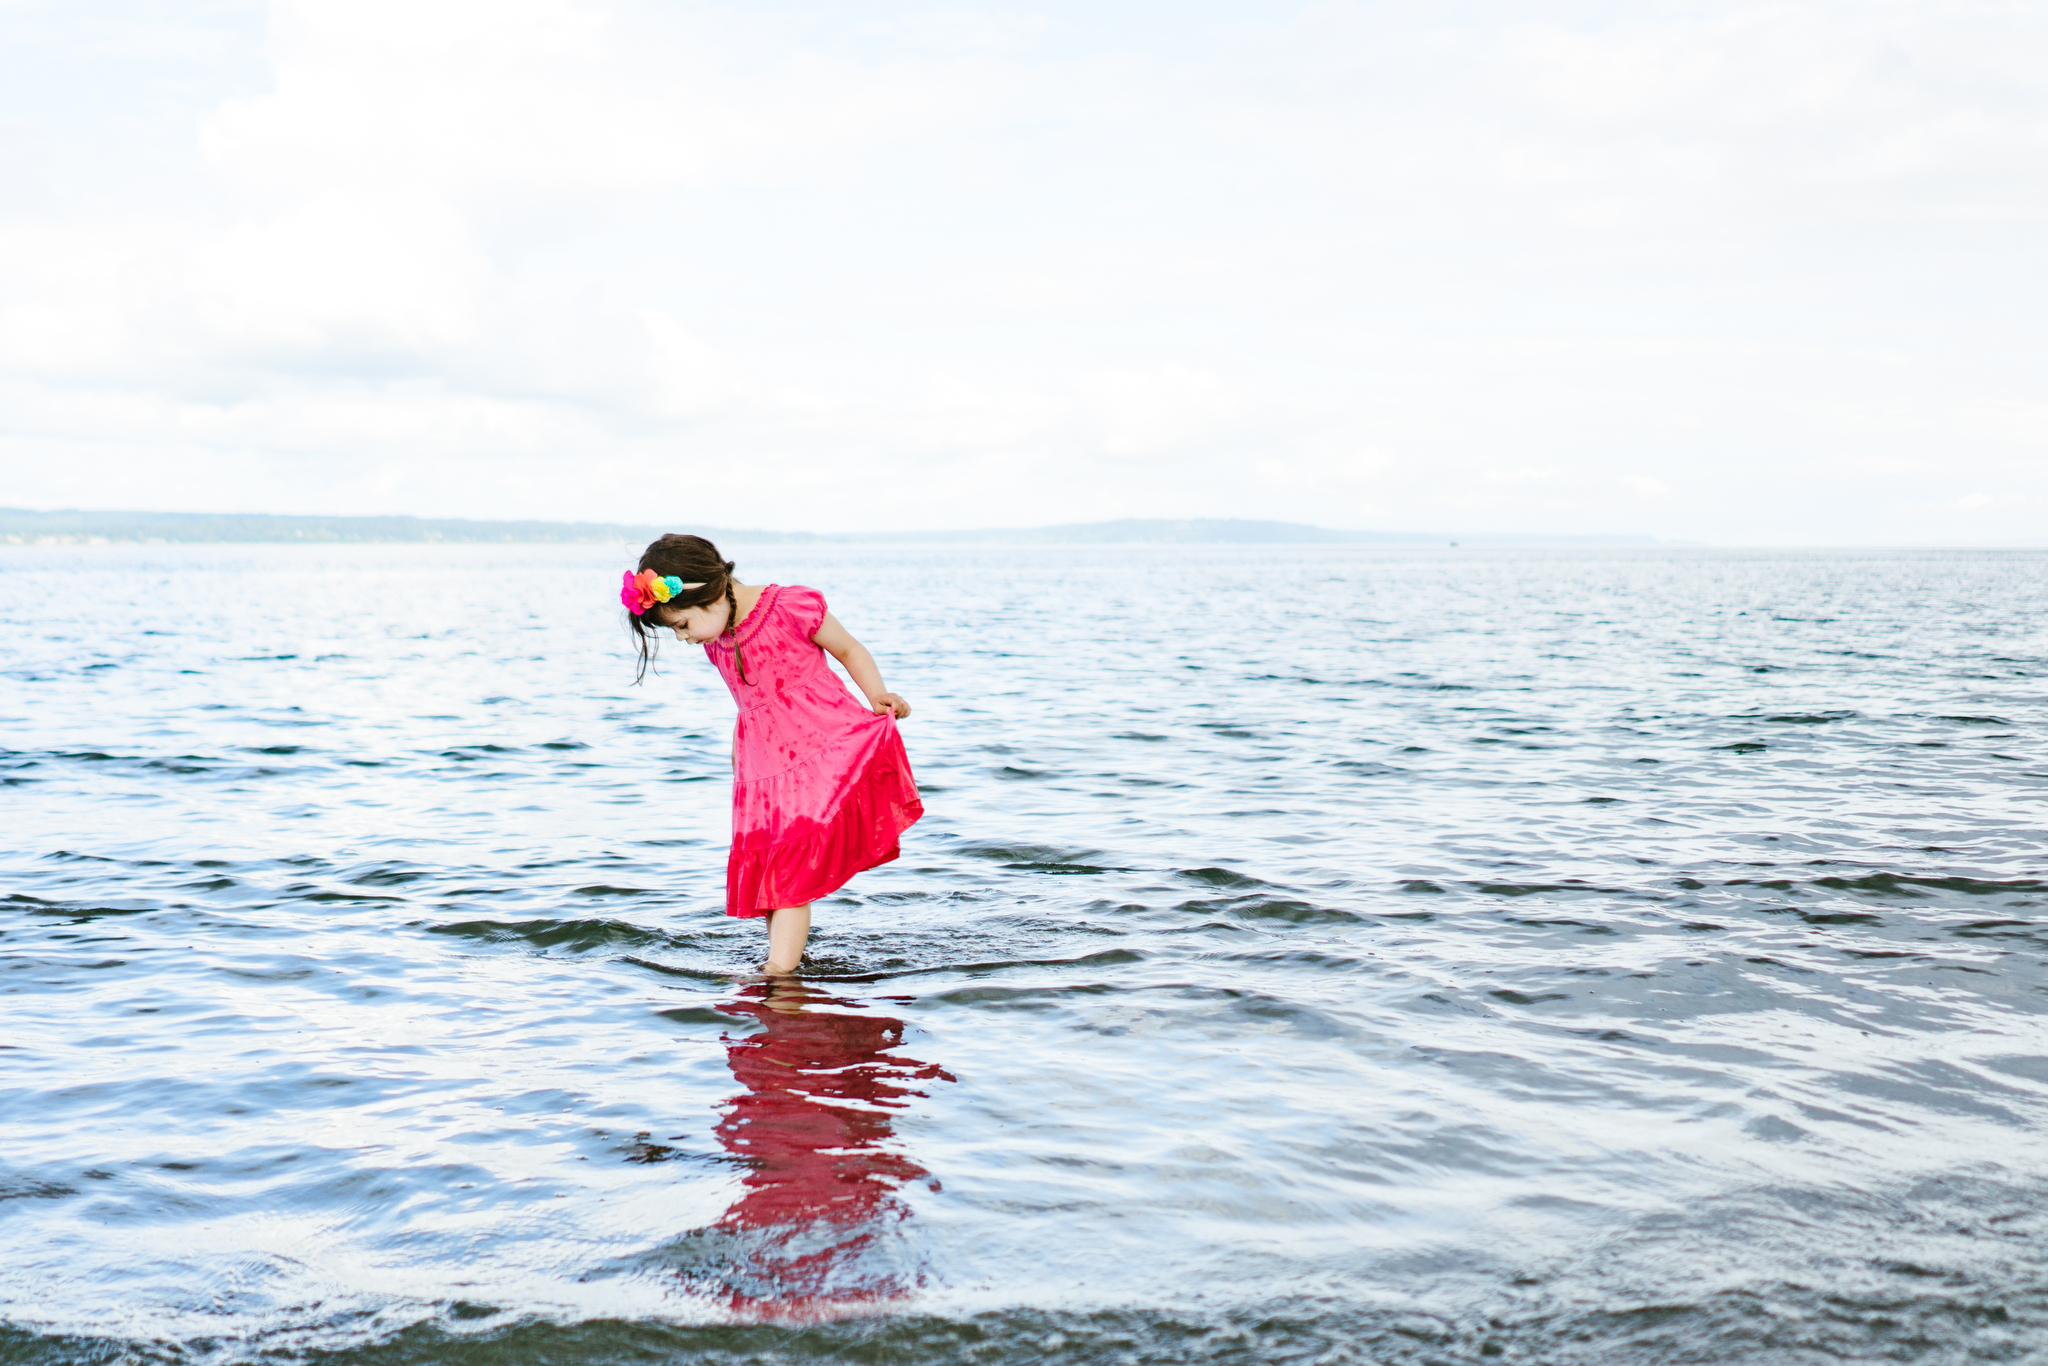 Family Photos at Carkeek Park in Seattle, Washington